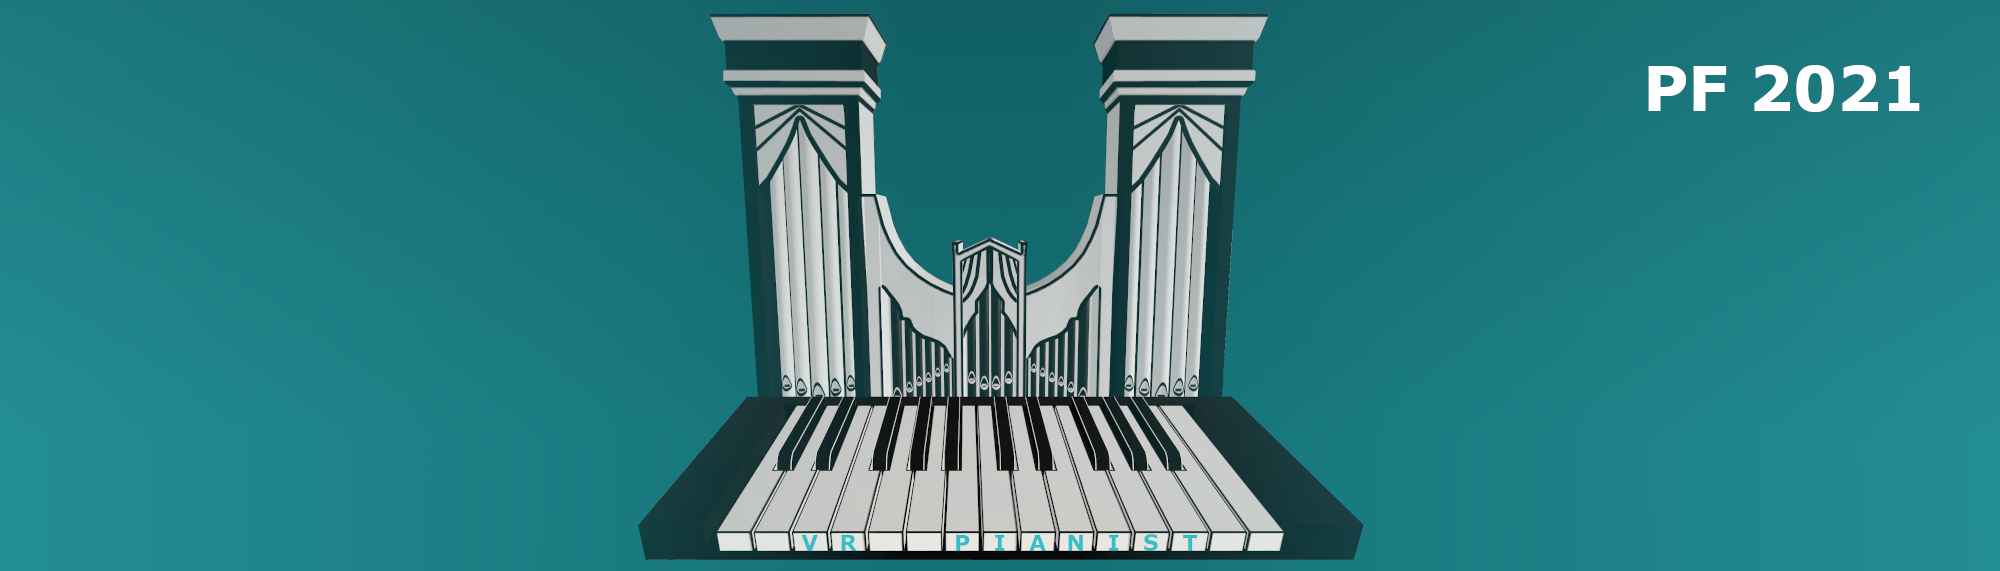 PF cart 2021 from VR Pianist game